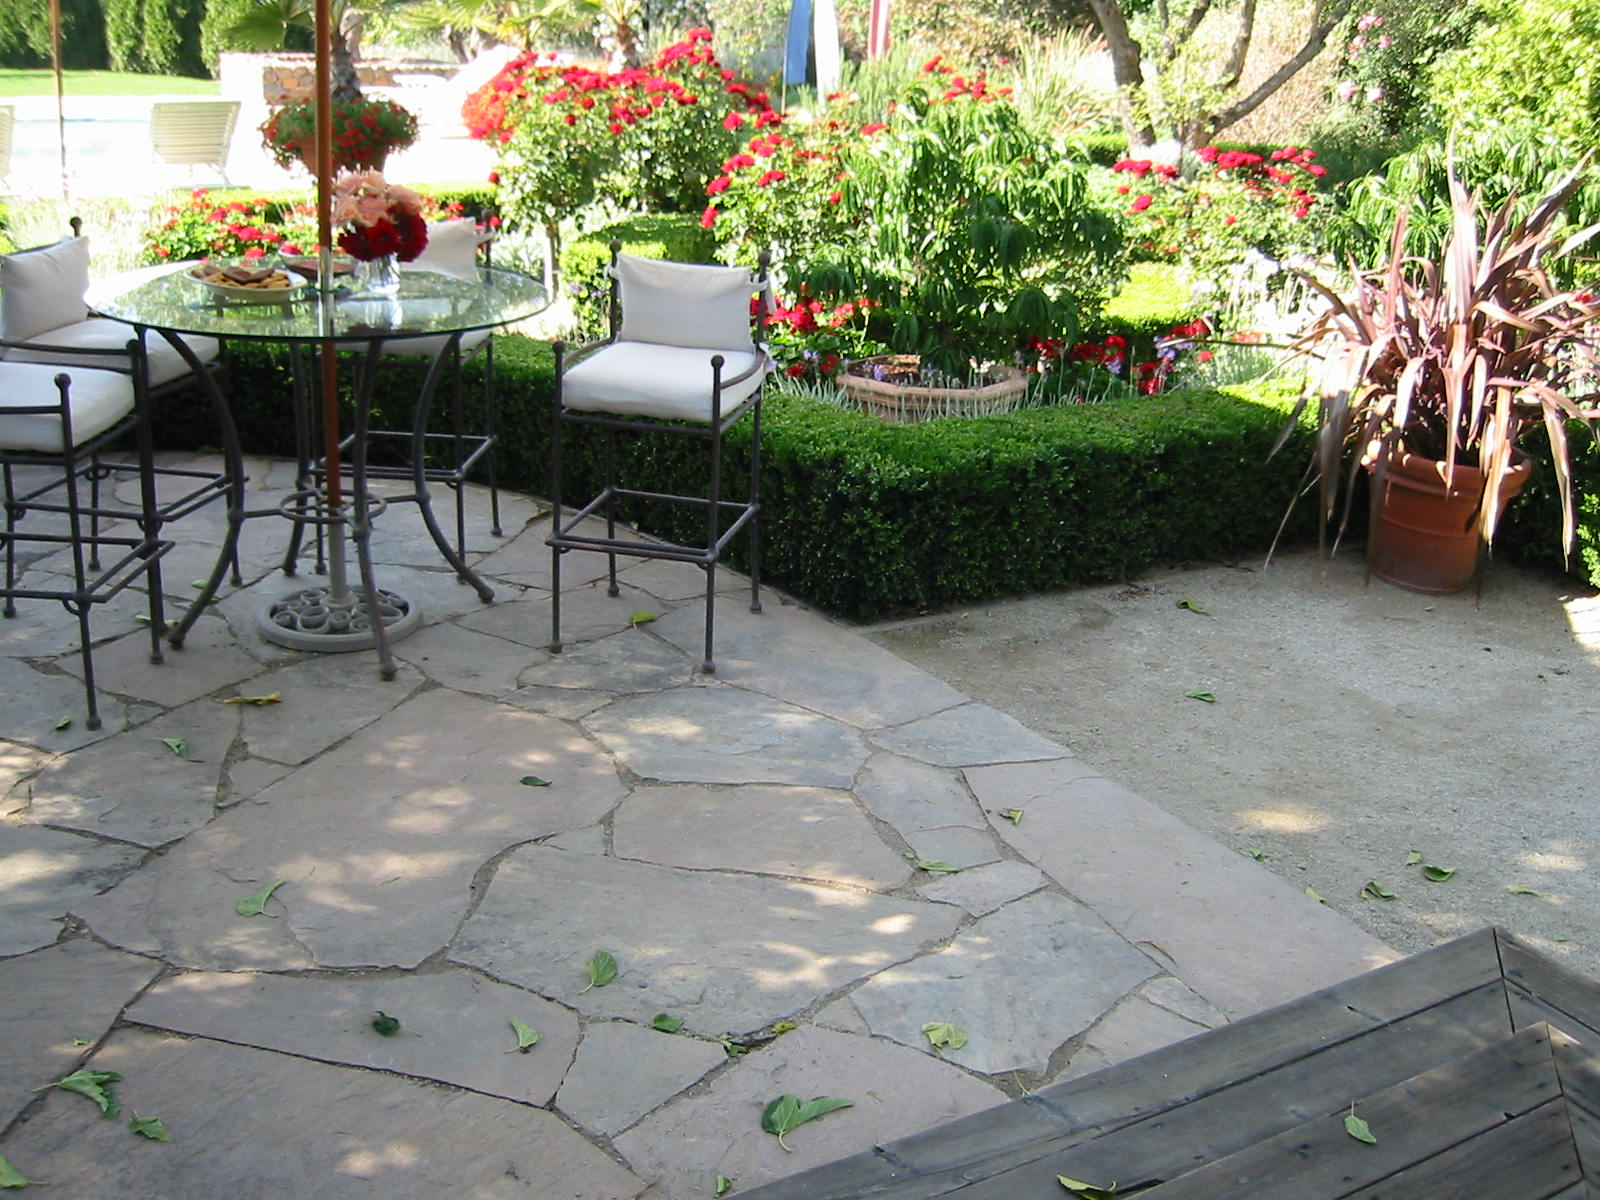 Patios hard and soft the human footprint a proper installation using arizona flagstone with decomposed granite in between you will rarely see solutioingenieria